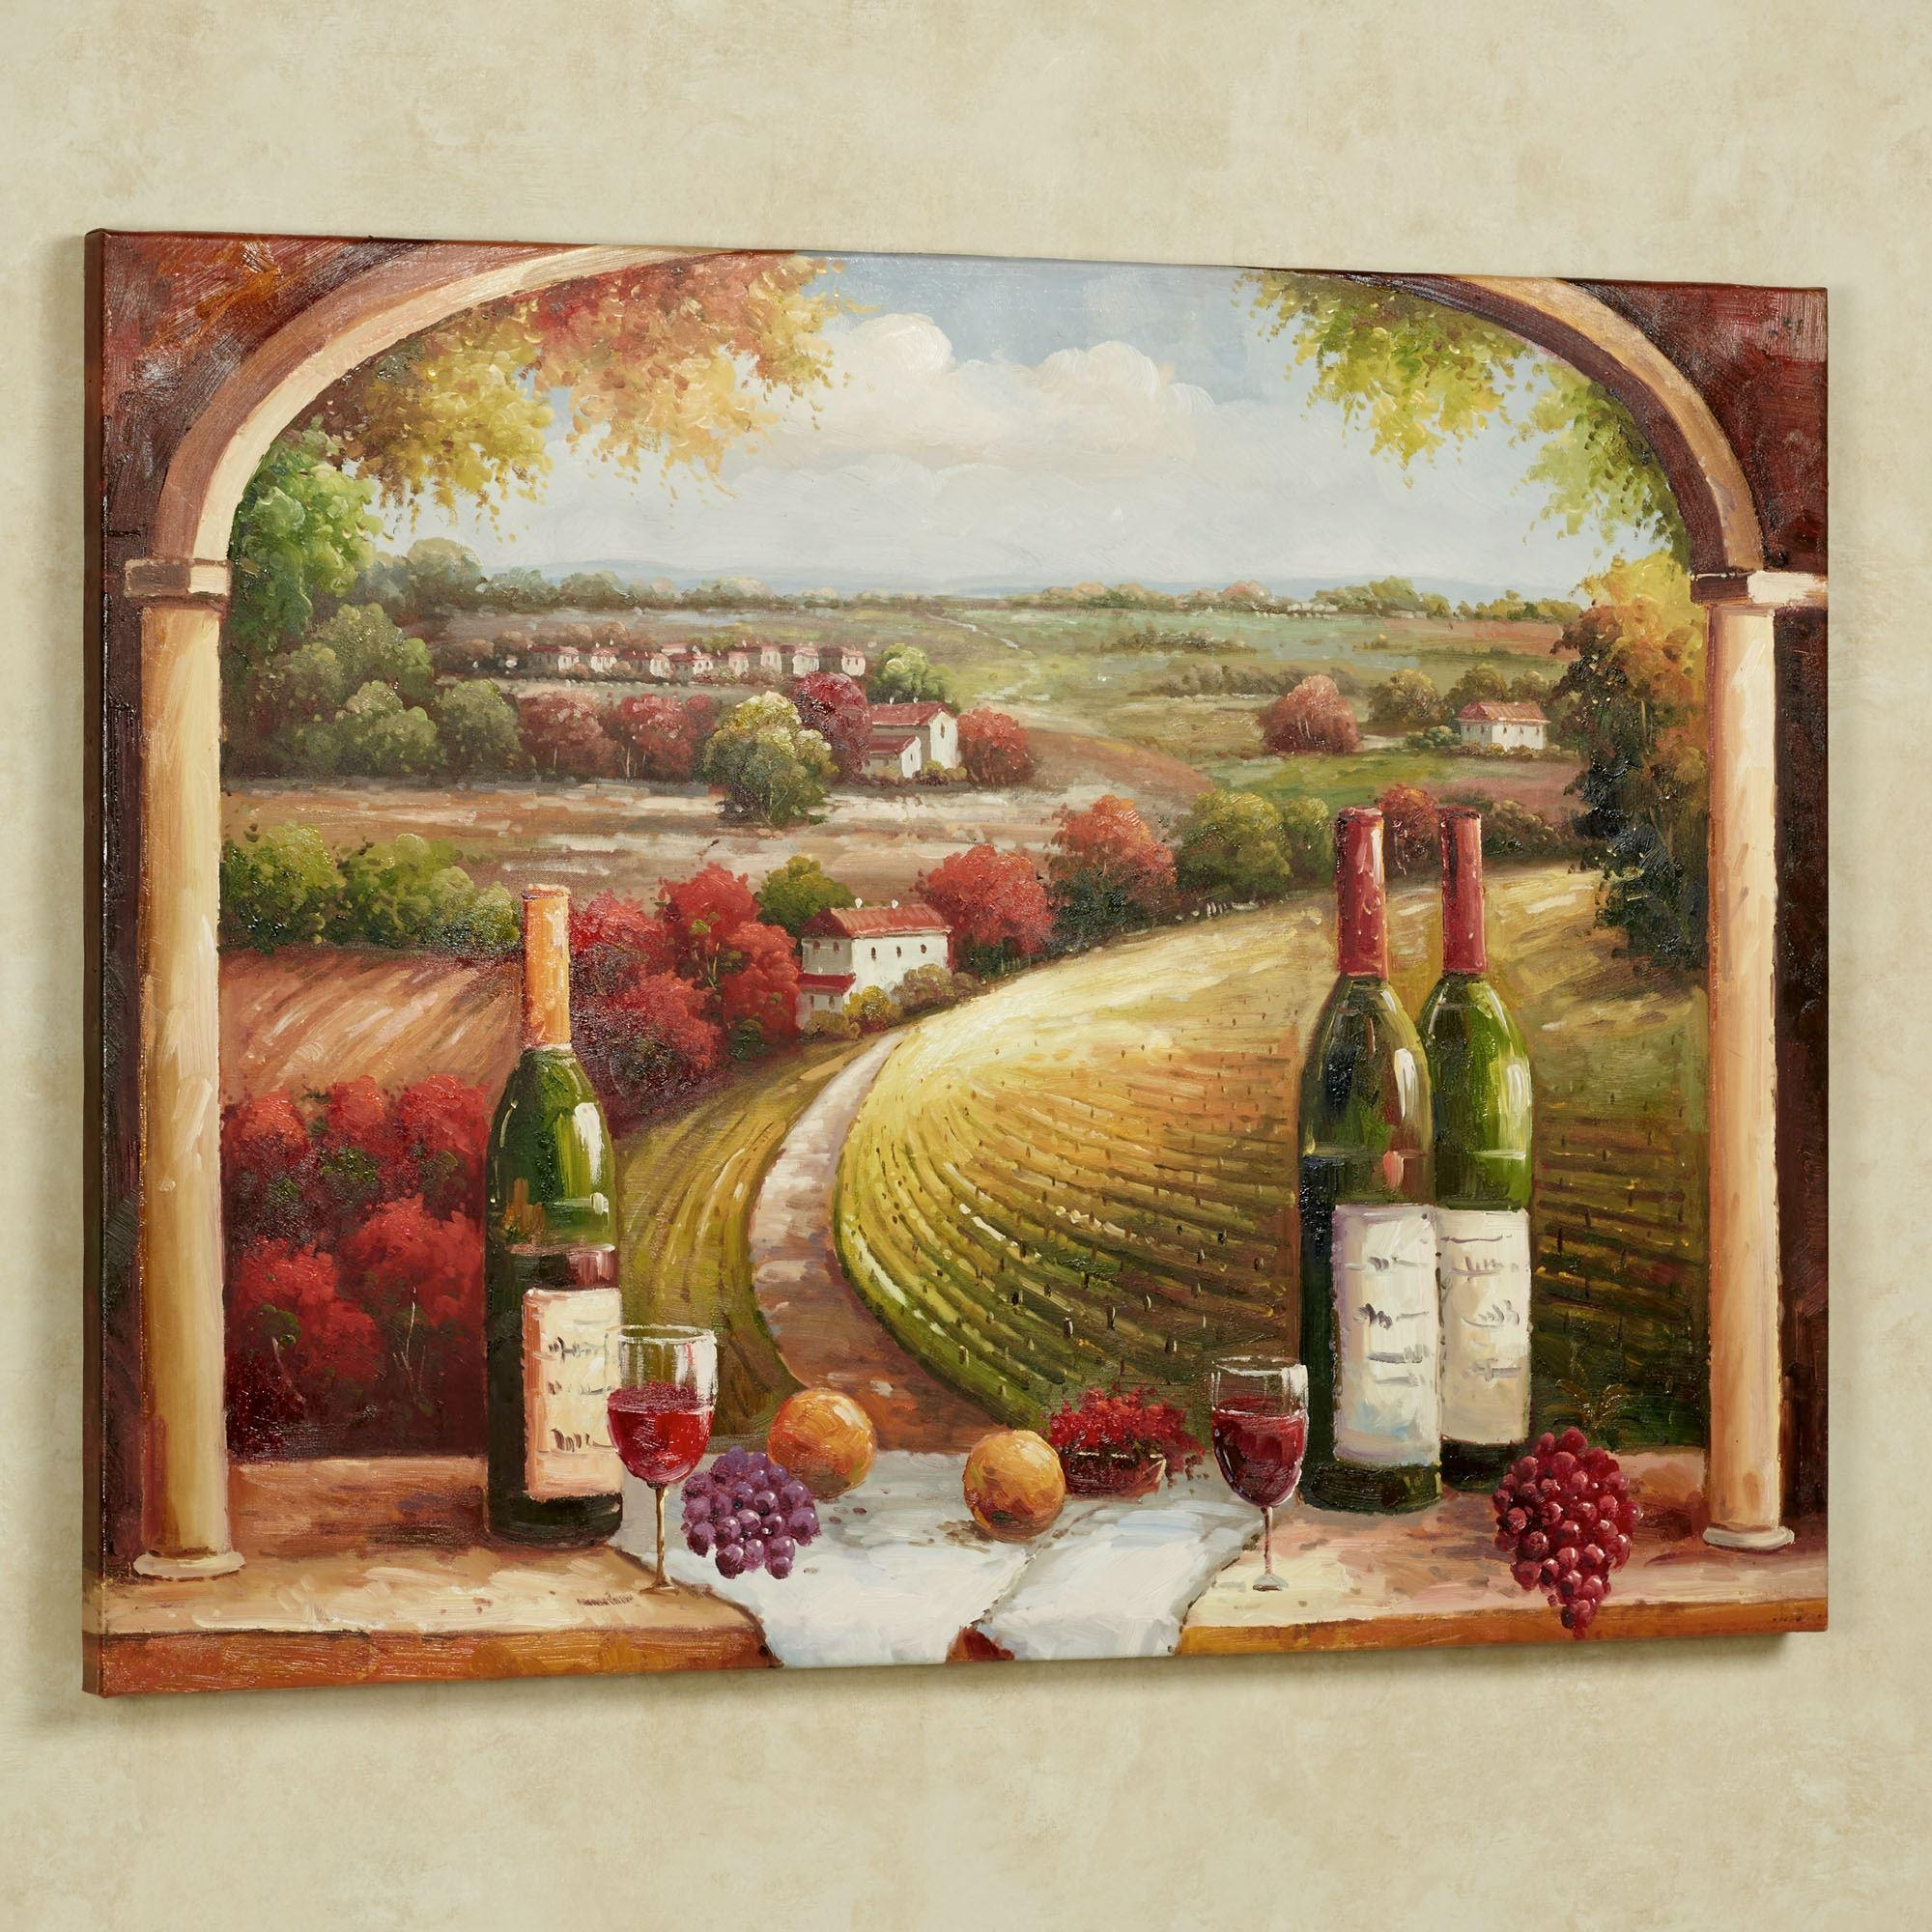 Canvas Wall Art | Touch Of Class Regarding Rustic Italian Wall Art (View 10 of 20)